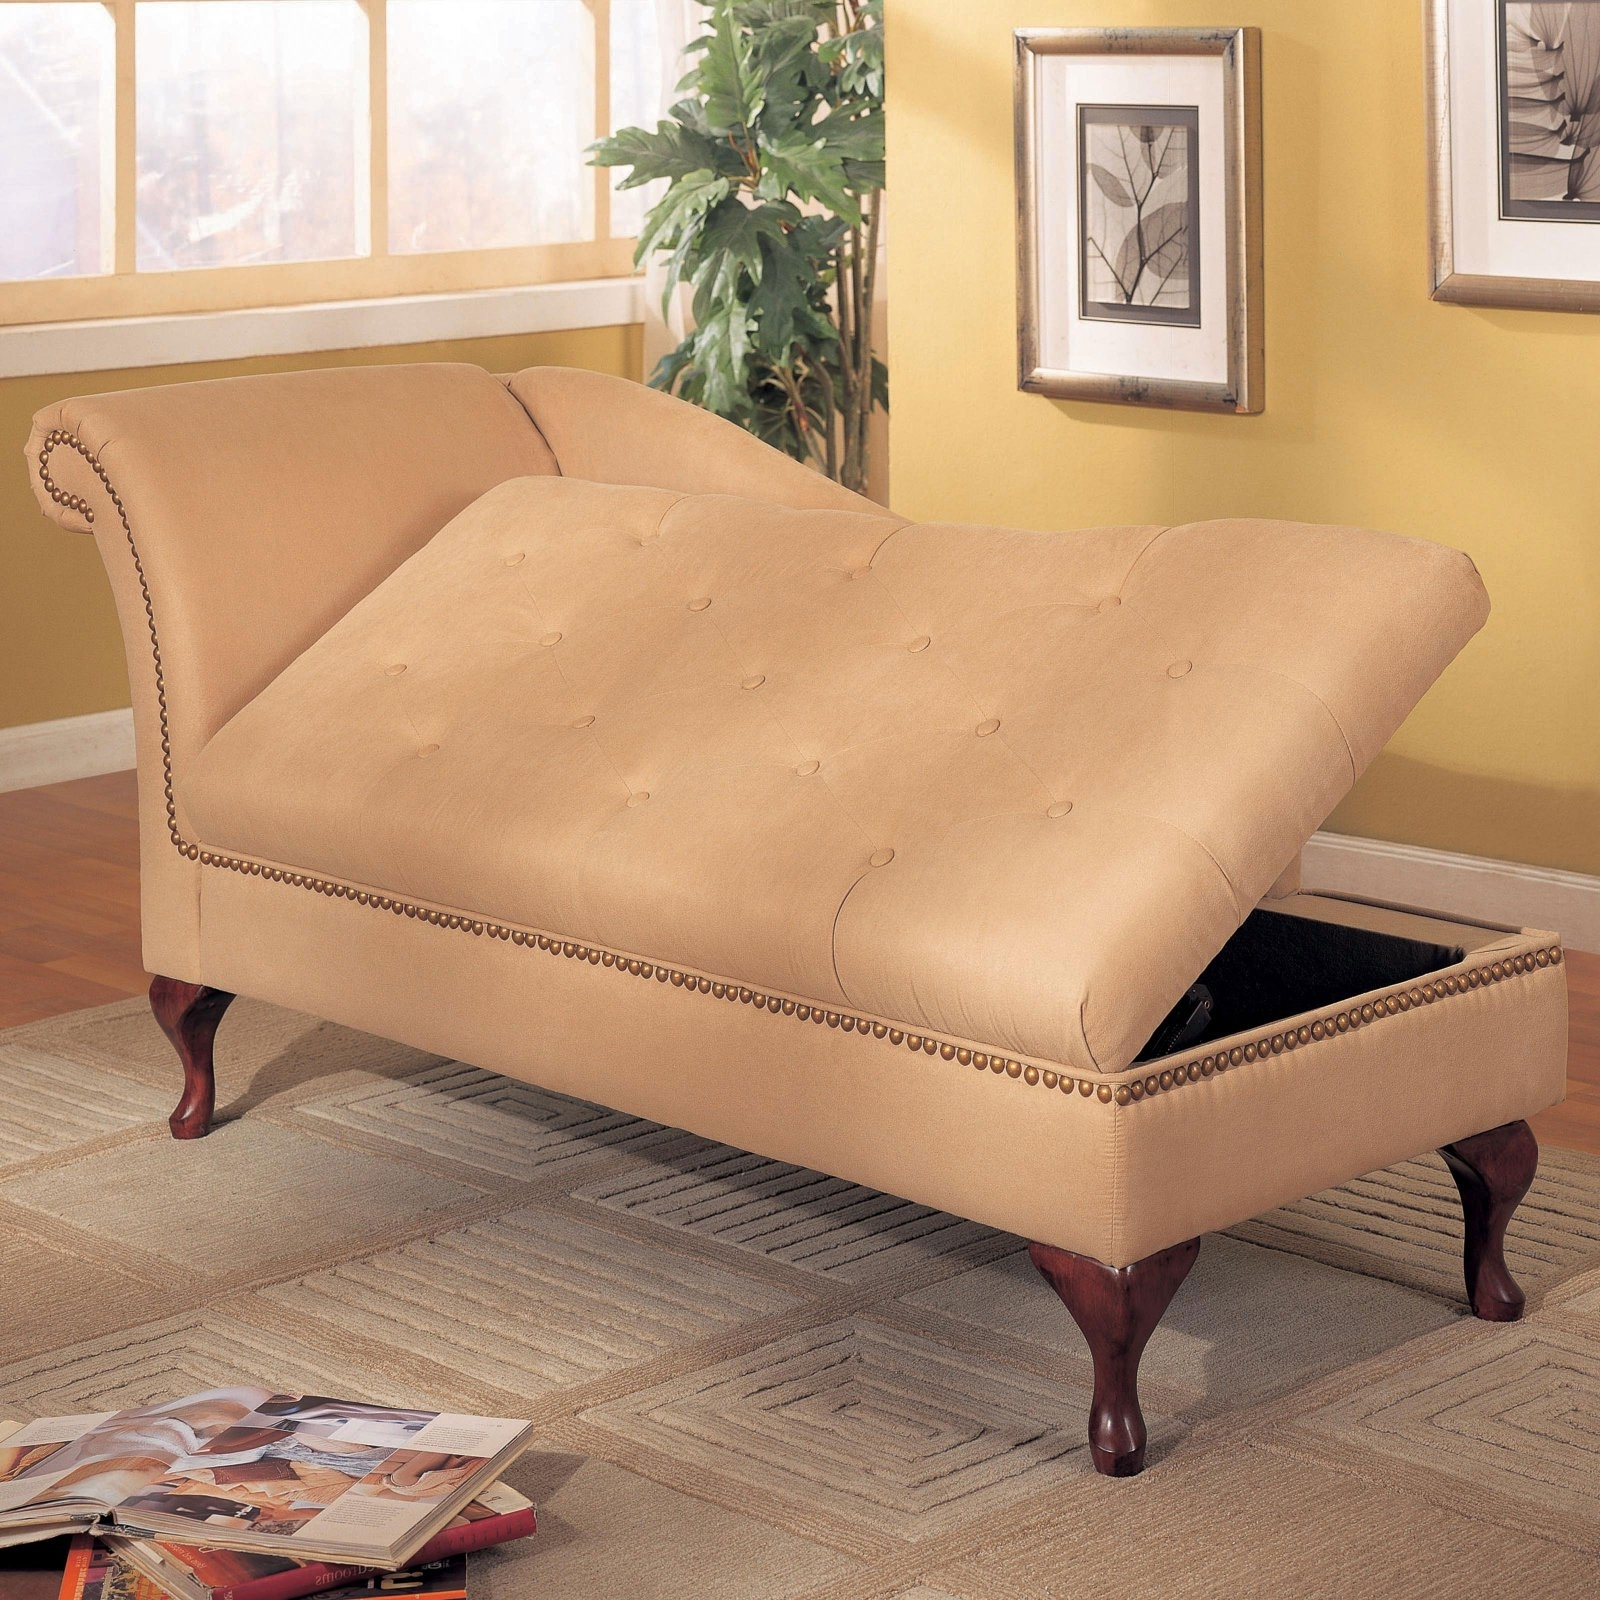 Small Chaise Lounge Chairs Within Current Small Chaise Lounge Chair For Room Awesome Bedroom Chairs Ideas (View 14 of 15)